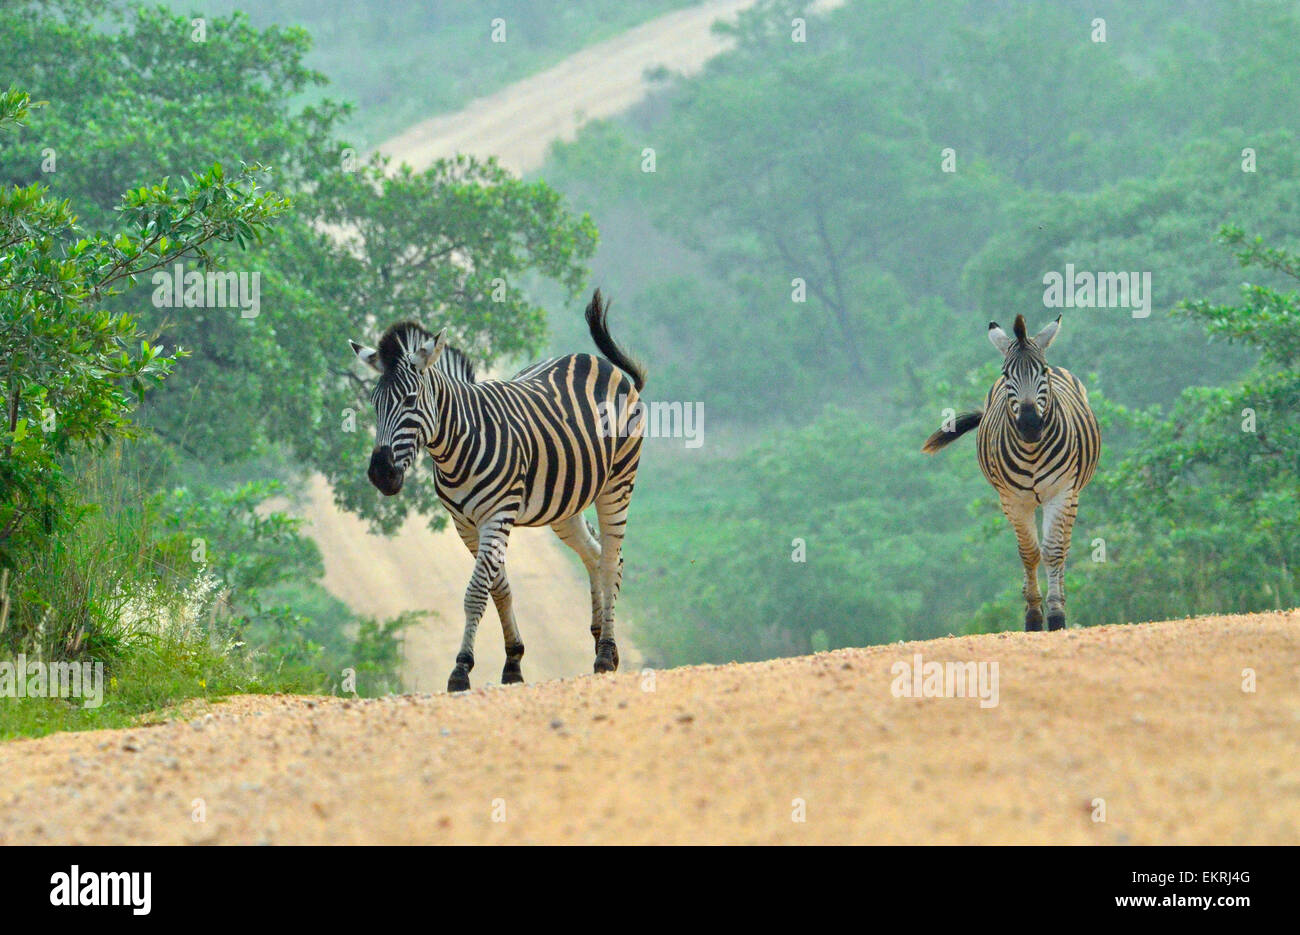 Two zebras crossing road in world famous Kruger National Park, Mpumalanga, South Africa. Stock Photo